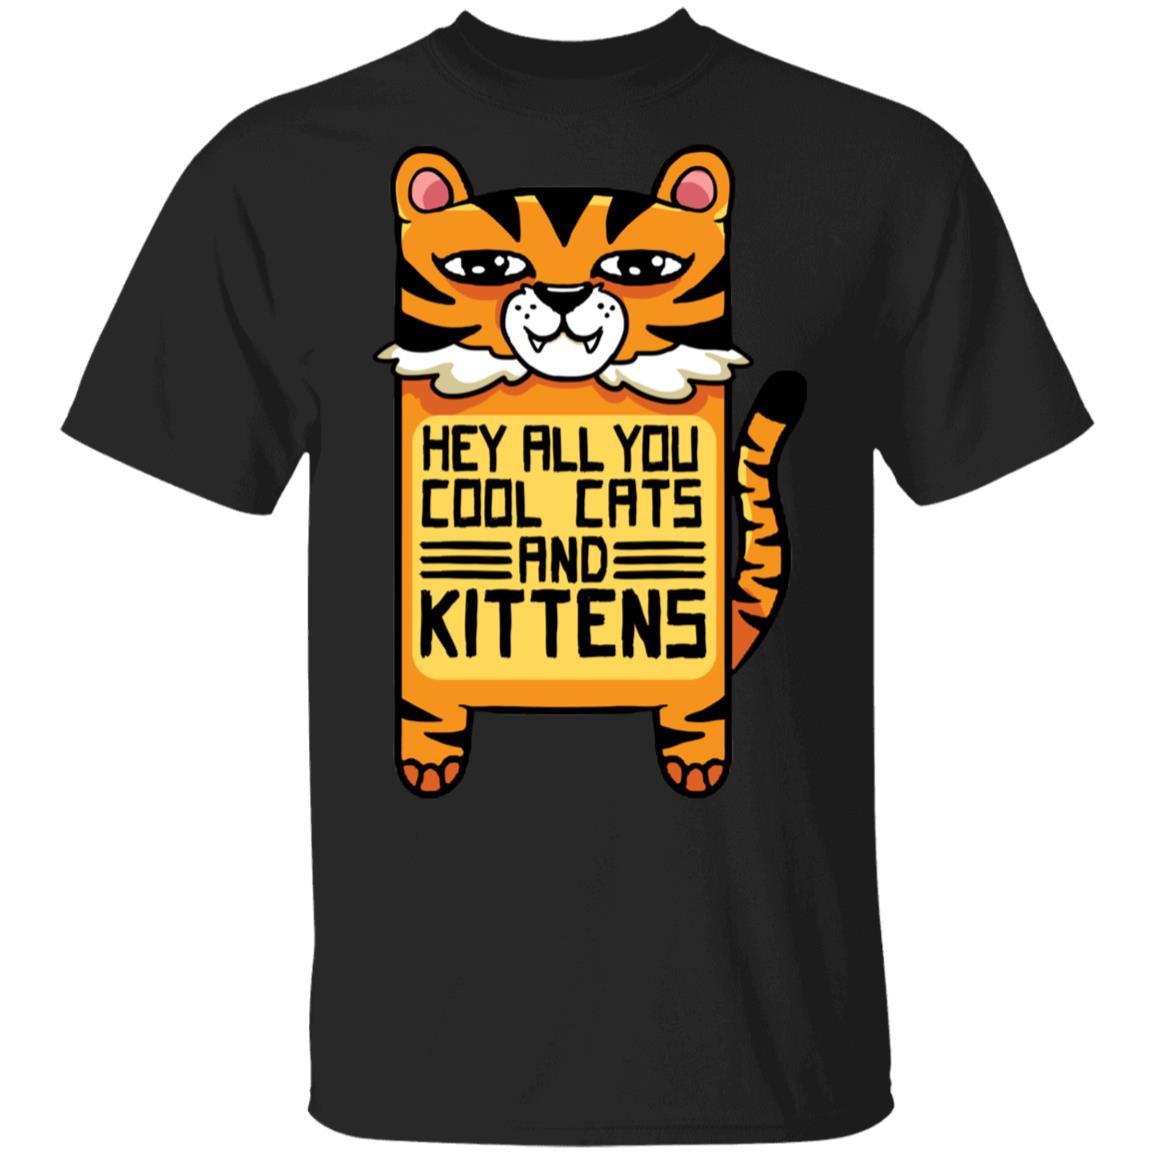 Funny Tiger King Meme Shirt Hey All You Cool Cats And Kittens T Shirt Cubebik